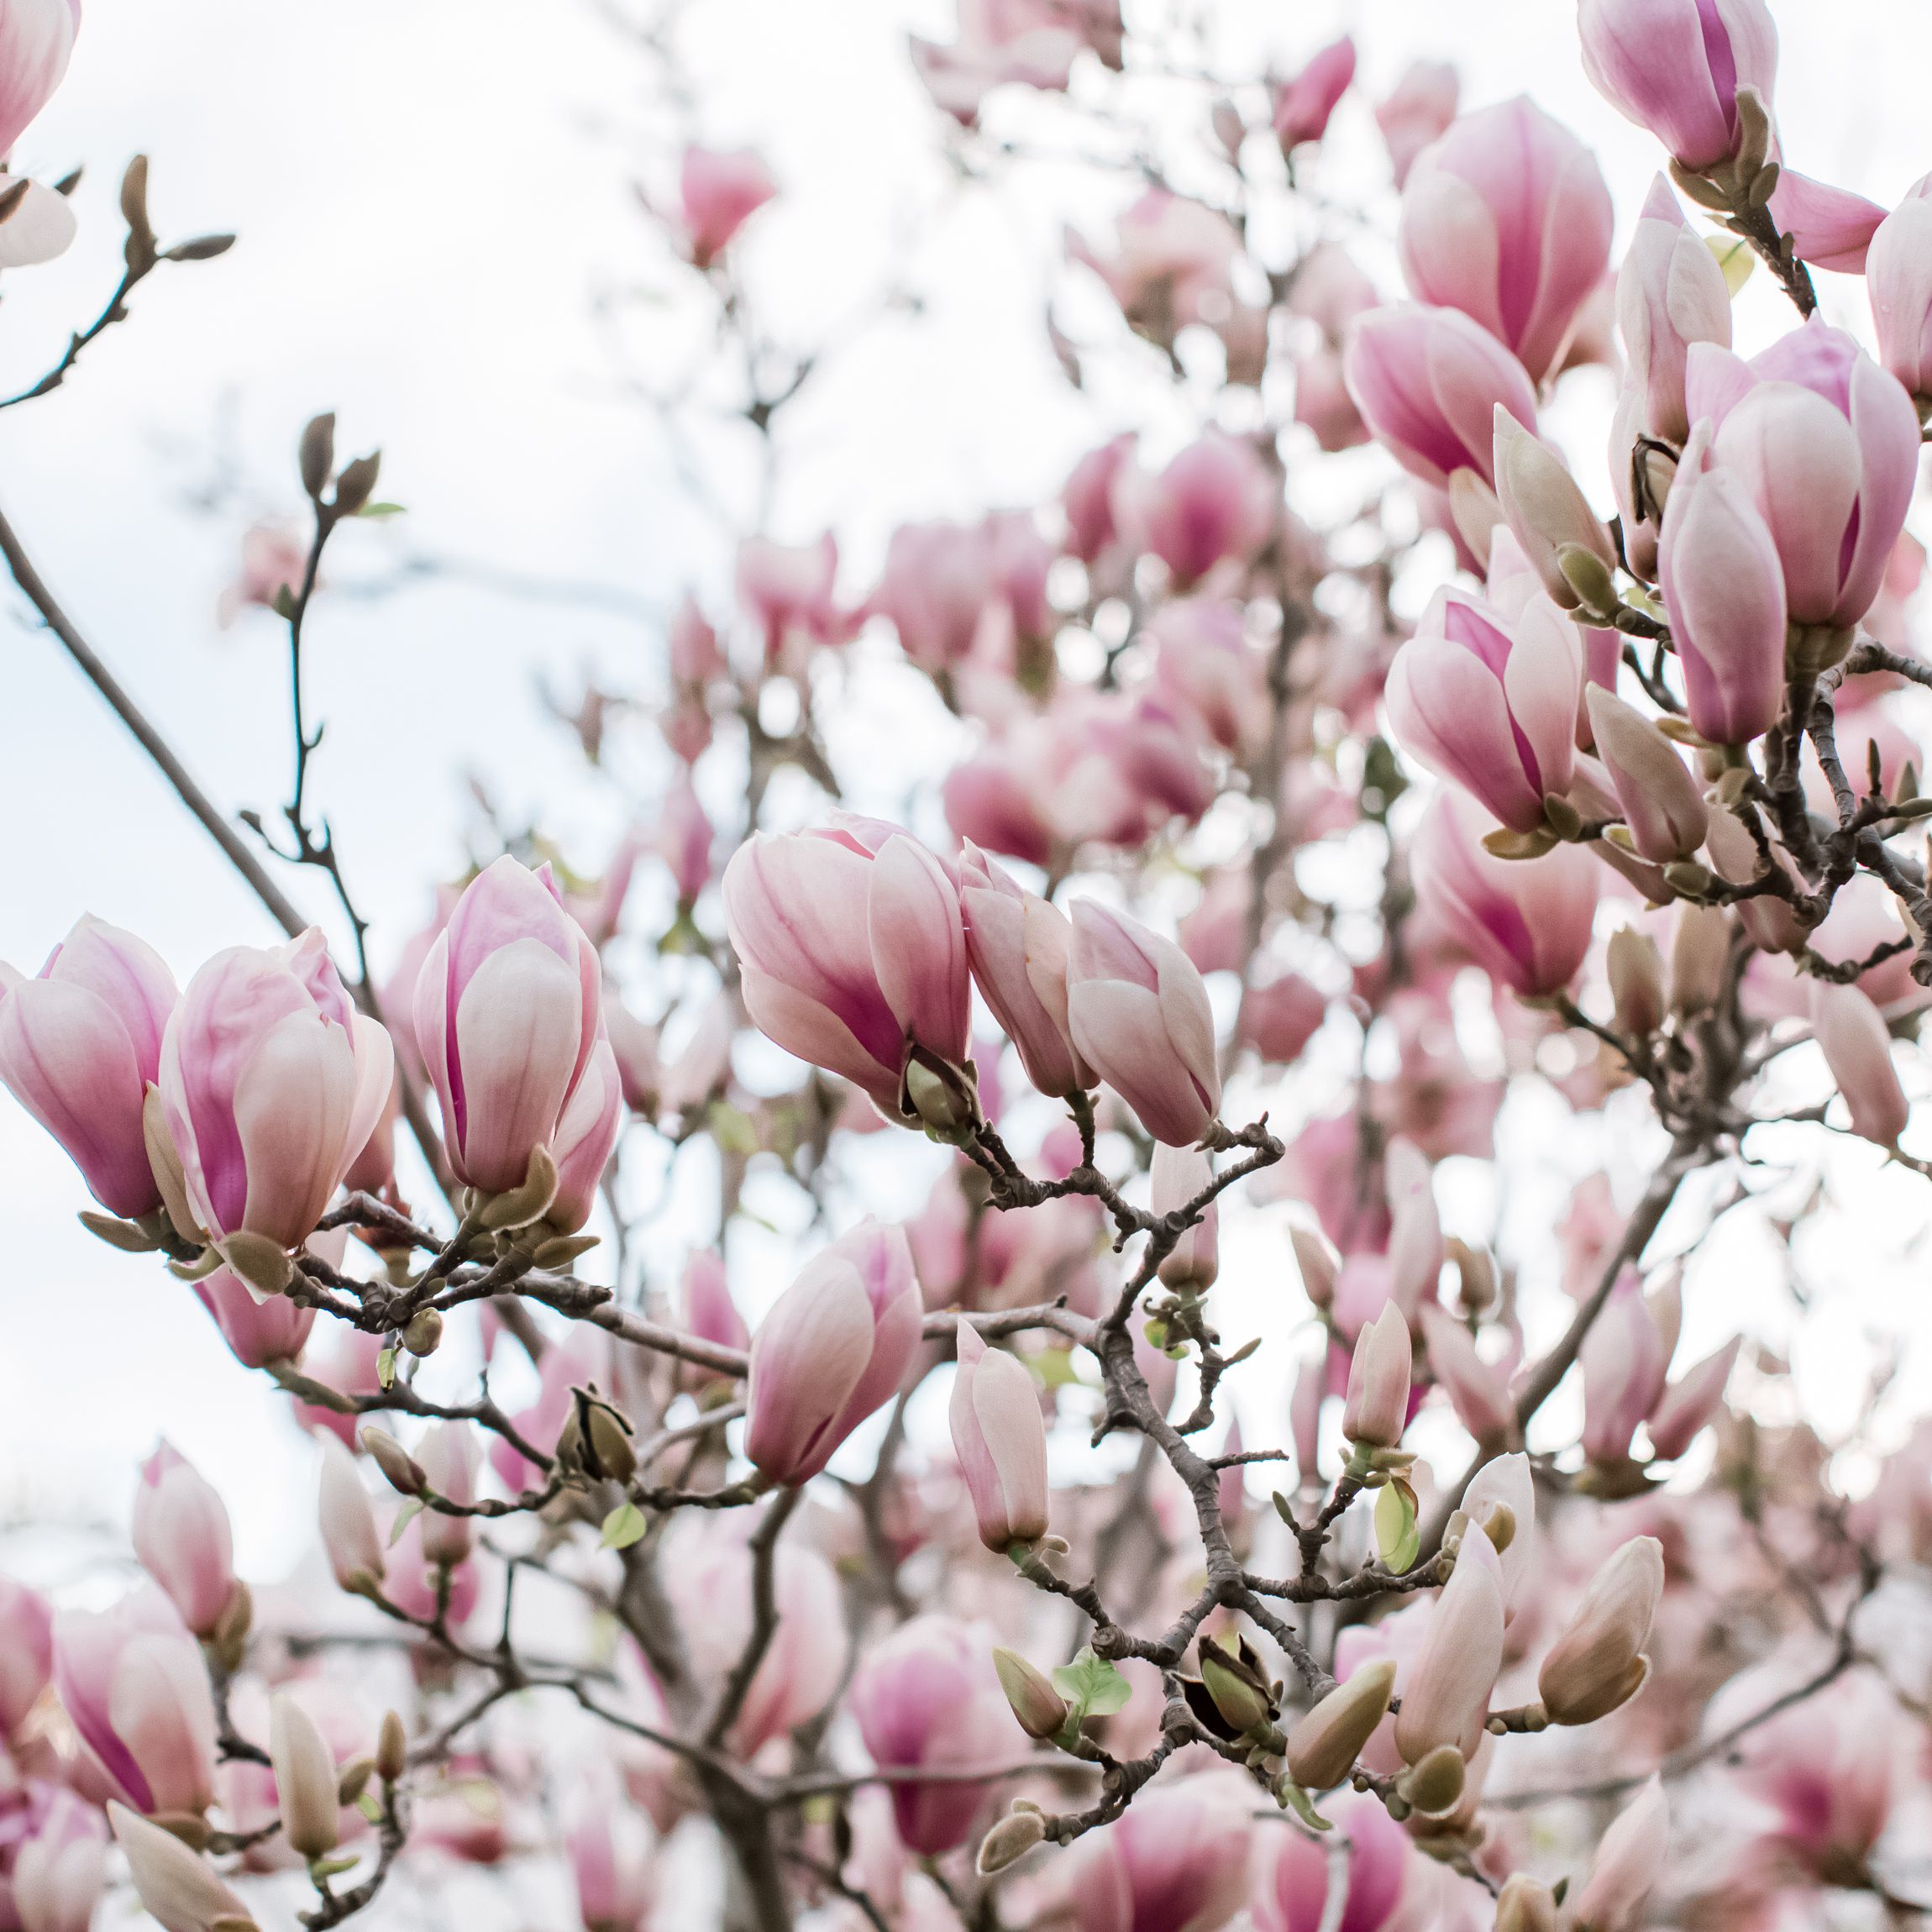 Saucer Magnolia Care And Growing Guide